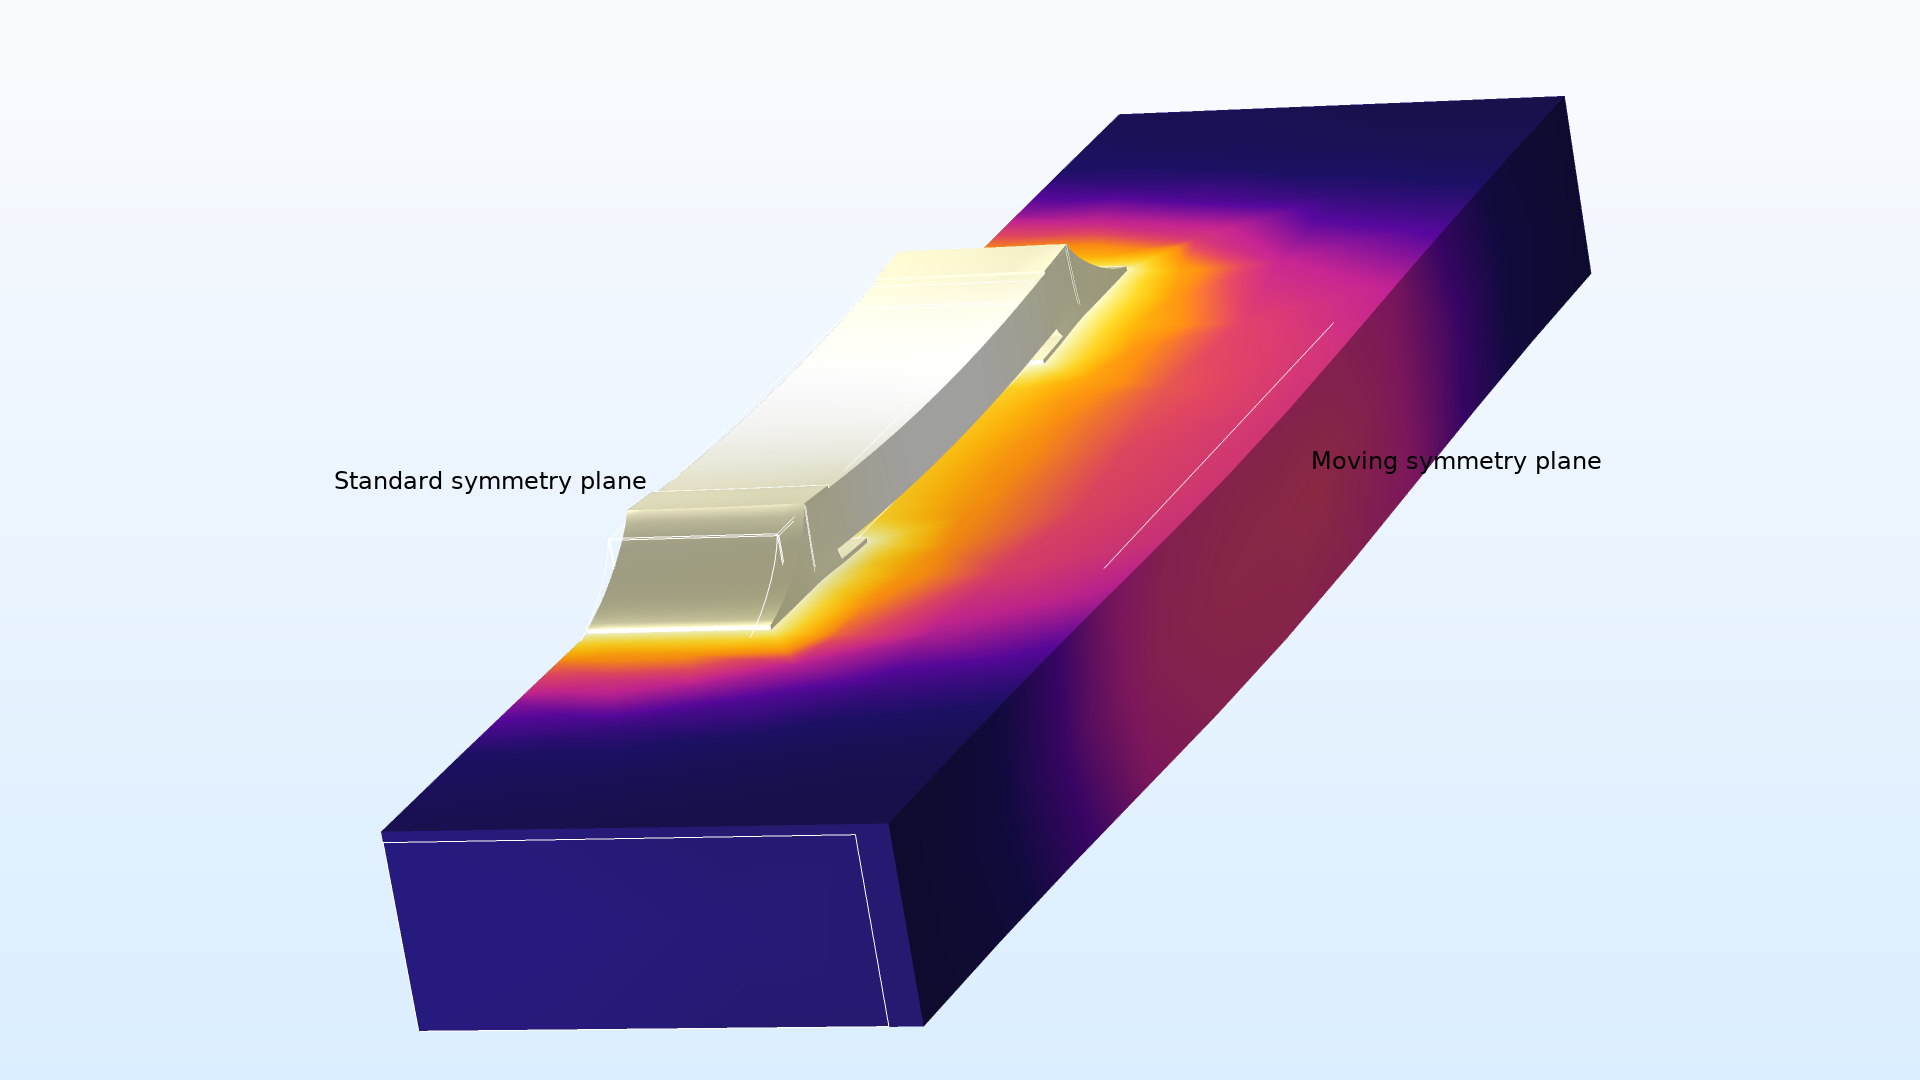 Structural Mechanics Module Updates Comsol 54 Release Highlights Circuit Wizard Standard Edition Animation Menu Window Of A Board Model With Sliding Symmetry Plane